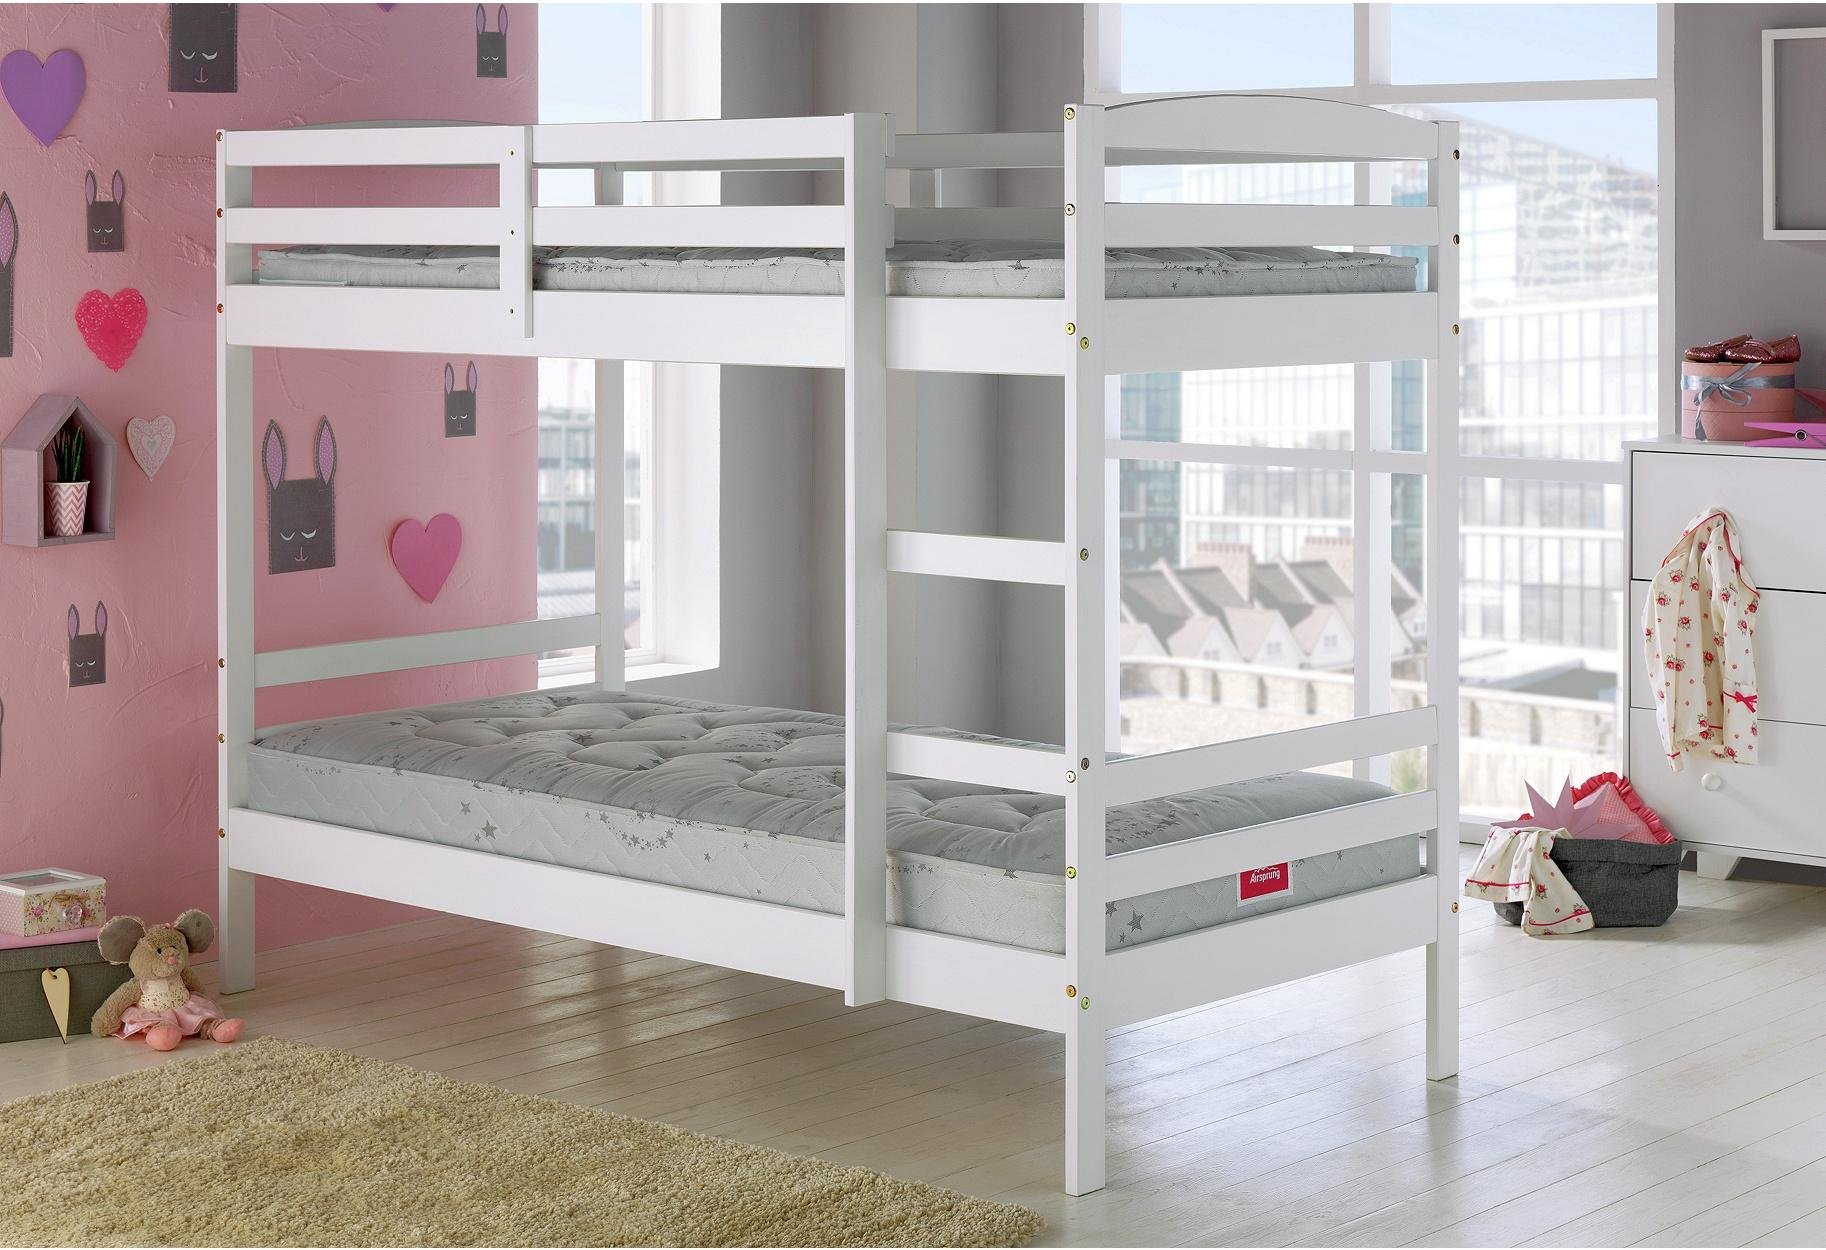 Bunkbed Pictures buy home josie single bunk bed frame - white at argos.co.uk - your